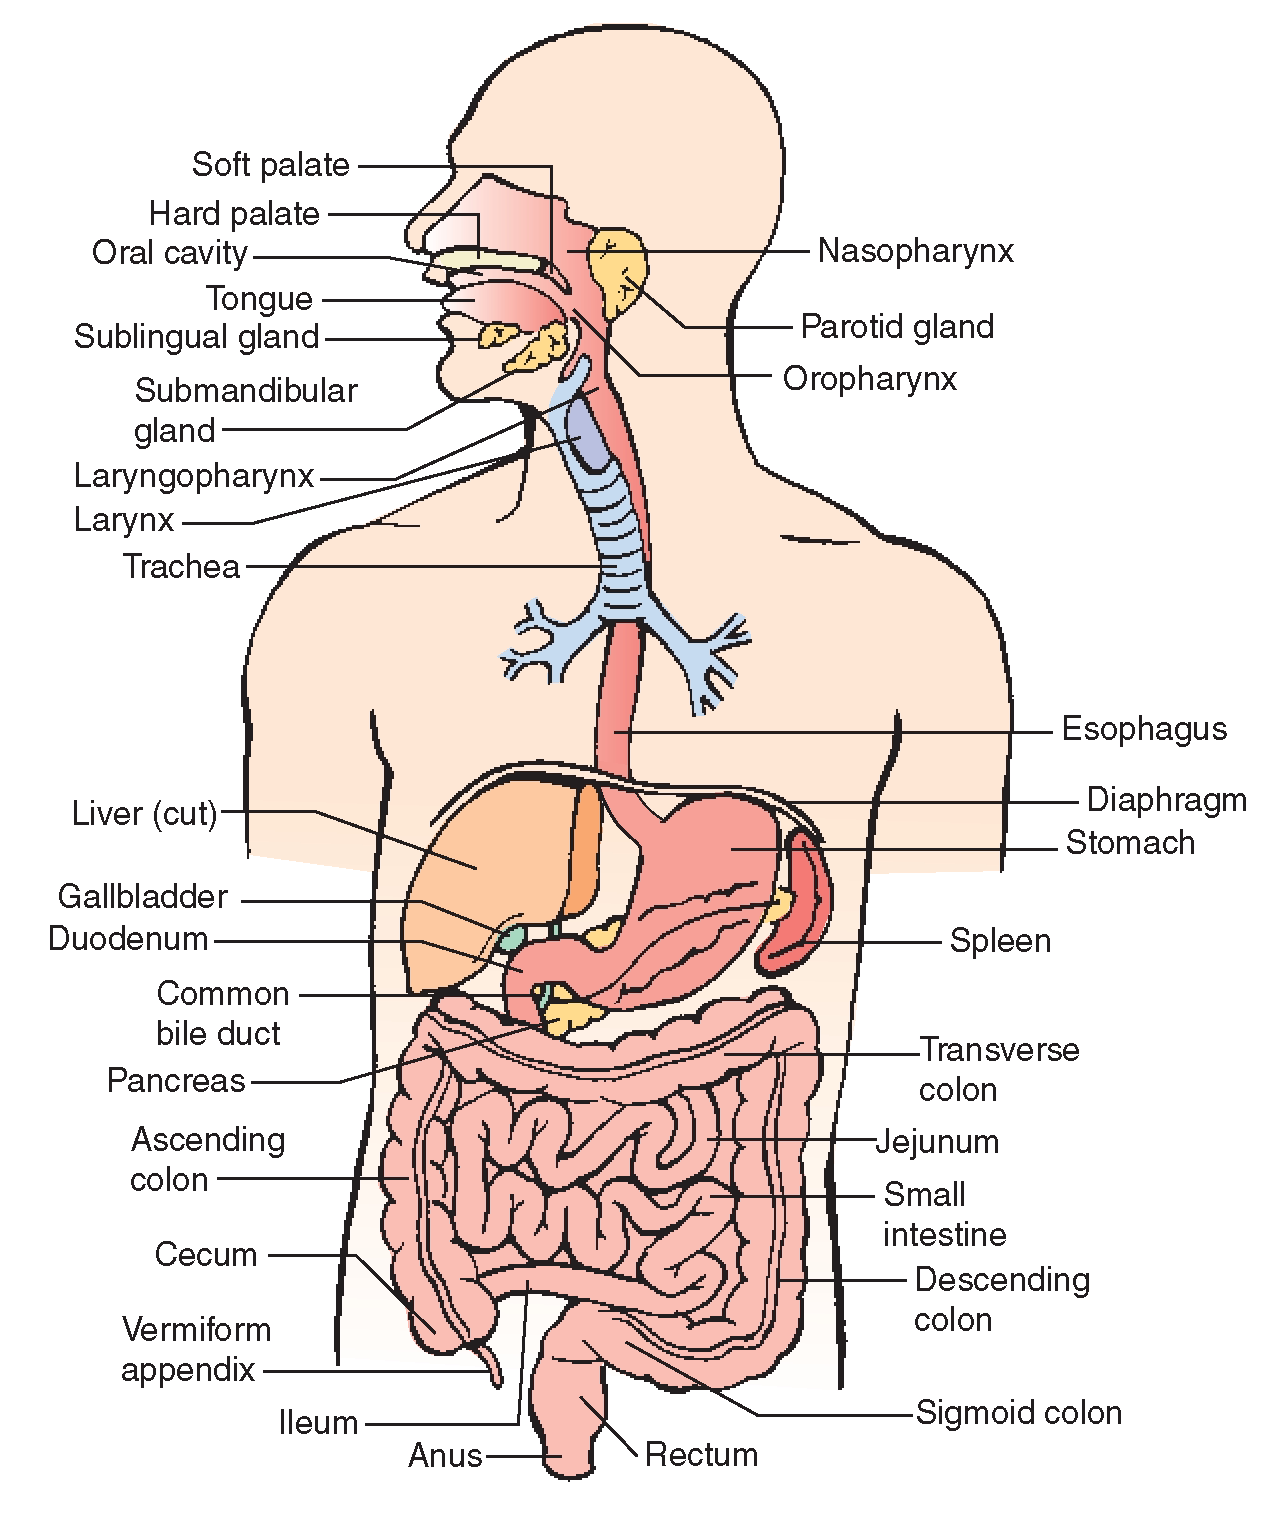 Human body digestive system human anatomy pinterest human diagram of digestive system anatomy simple digestive 28 images human digestive system as simple design diagram of digestive system diagram unlabeled ccuart Choice Image